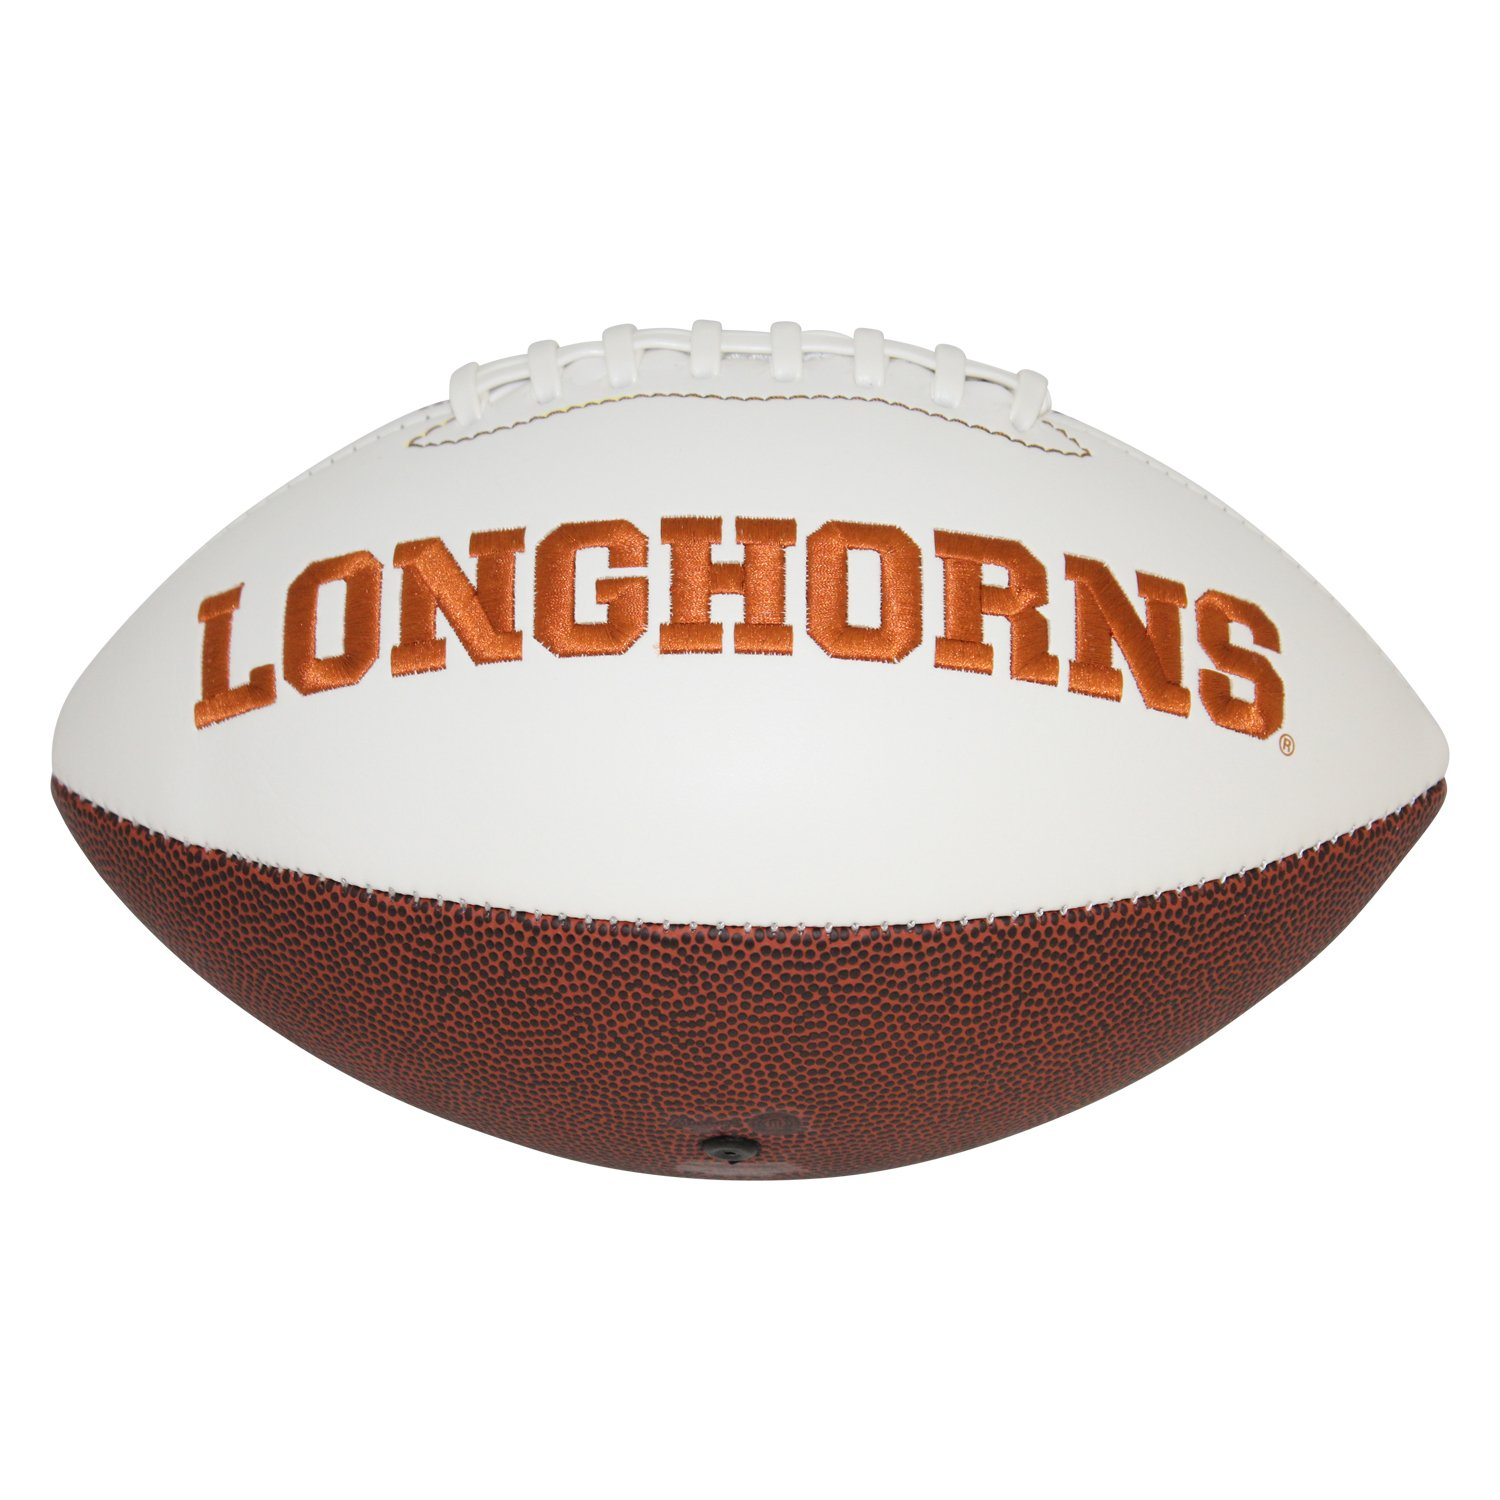 Tom Herman Texas Longhorns Autographed Signed White Panel Logo Football - Beckett Authentic